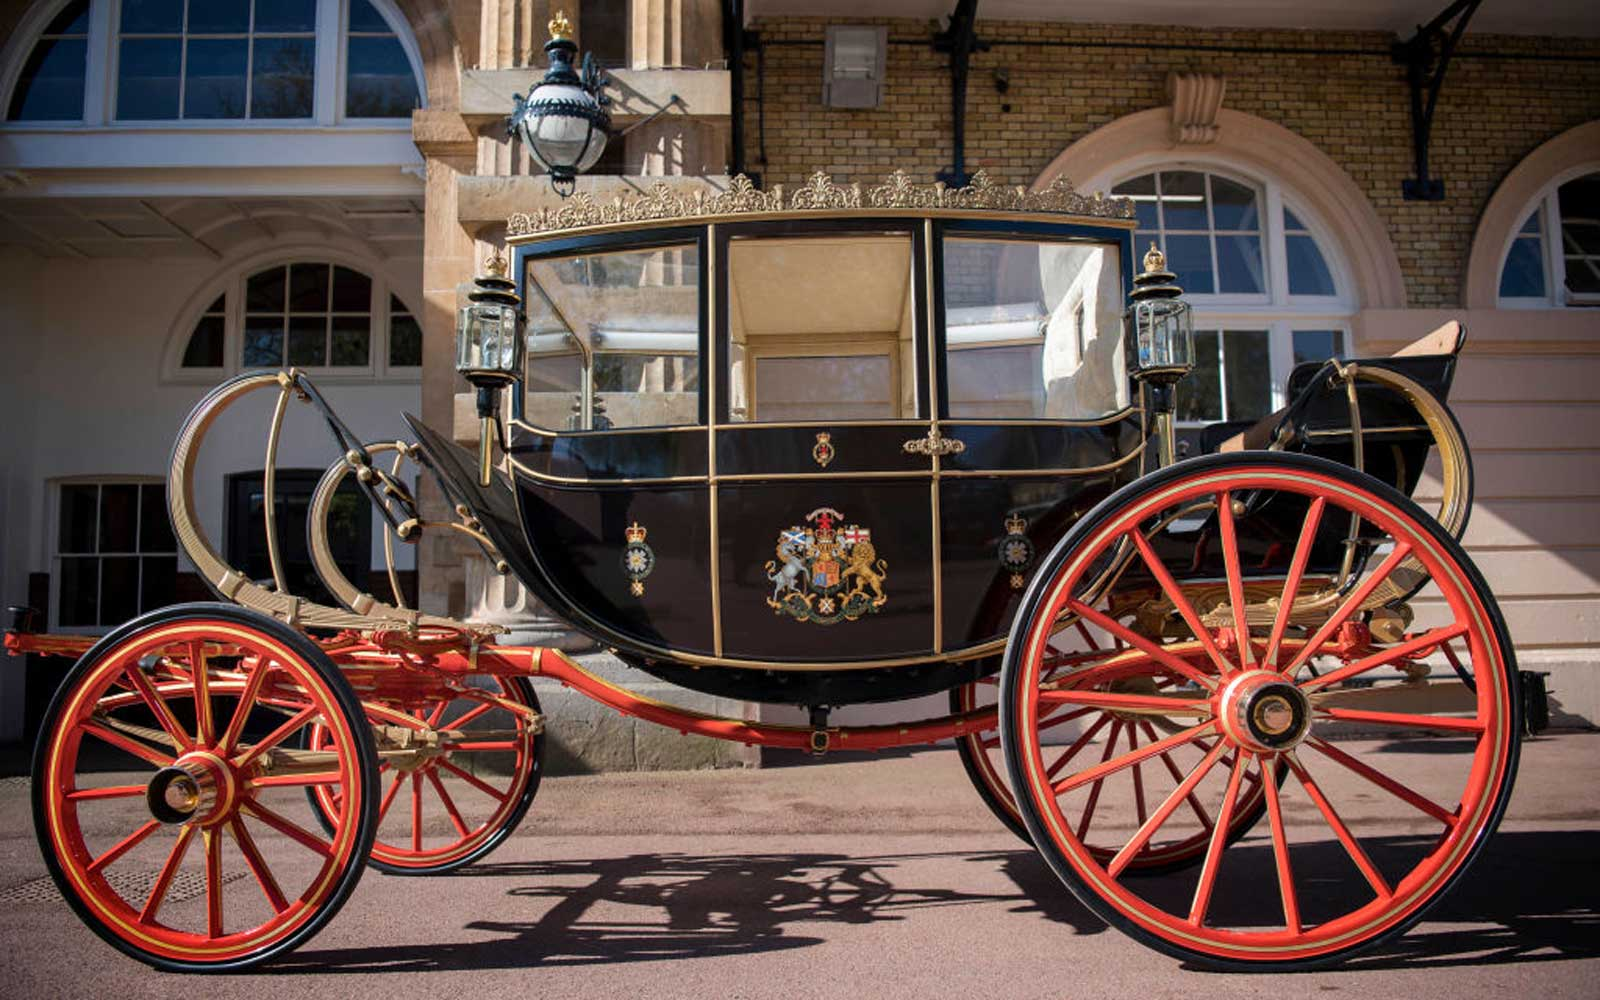 The Scottish State Coach, which will be used in the case of wet weather, for the wedding of Prince Harry and Meghan Markle